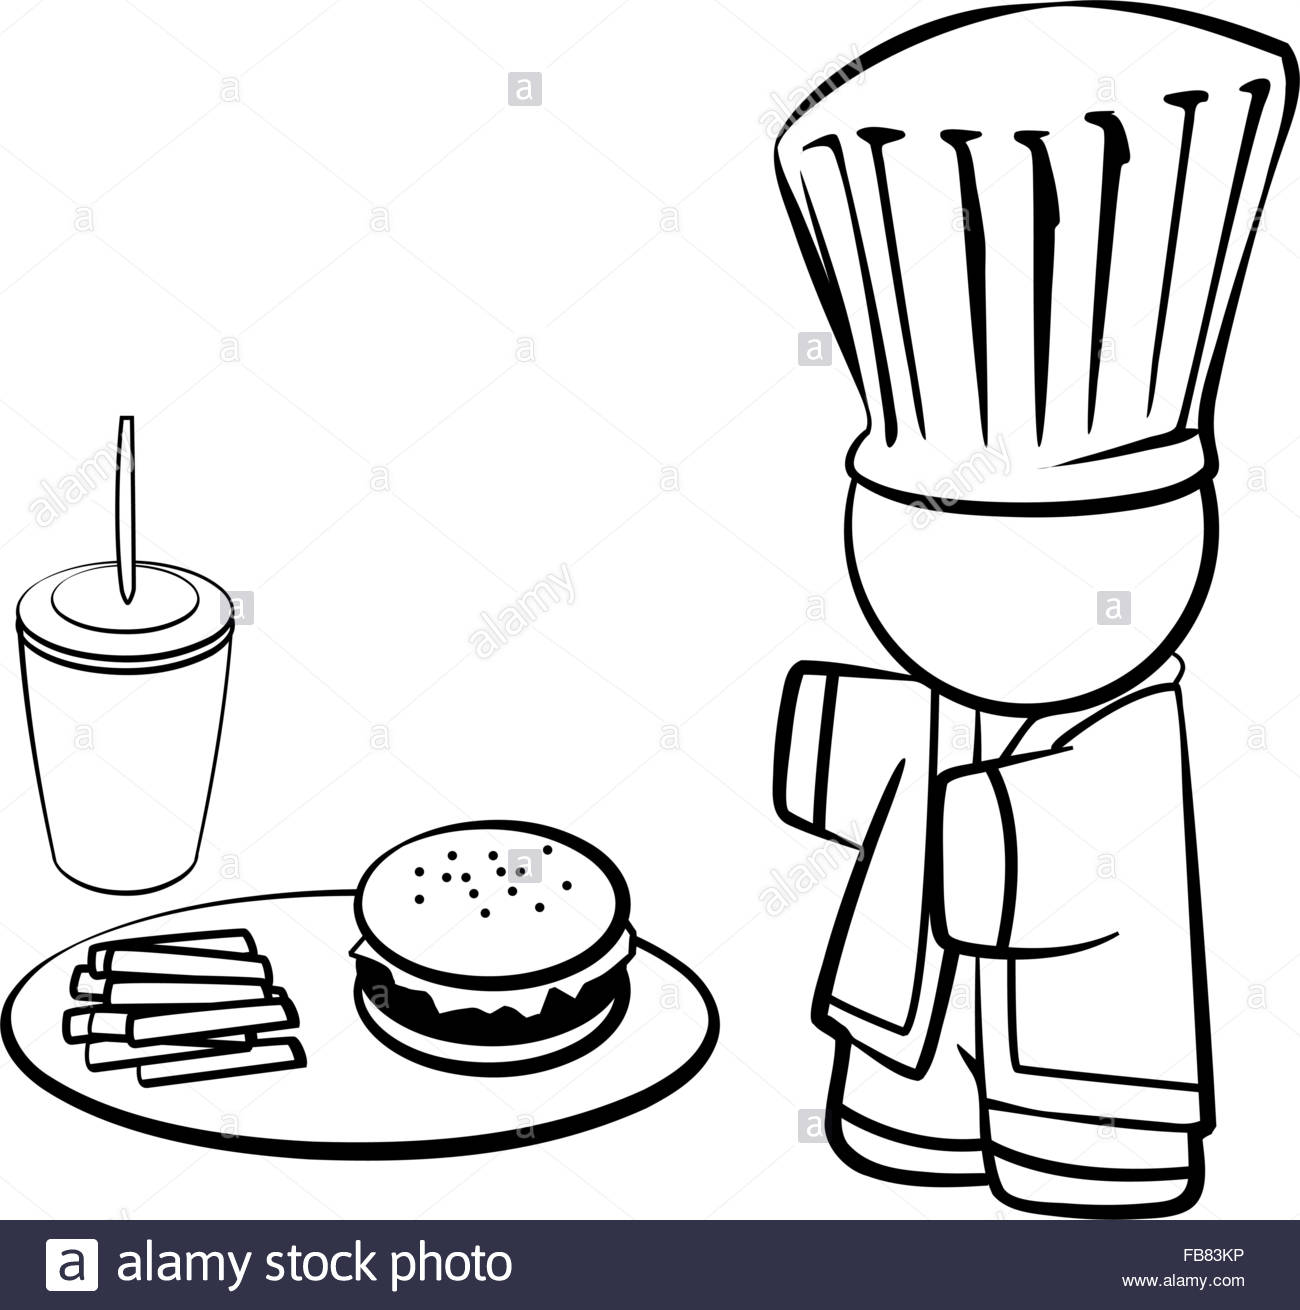 1300x1310 Line Drawing Of Chef With Hamburgernd Friesnd What Could Be